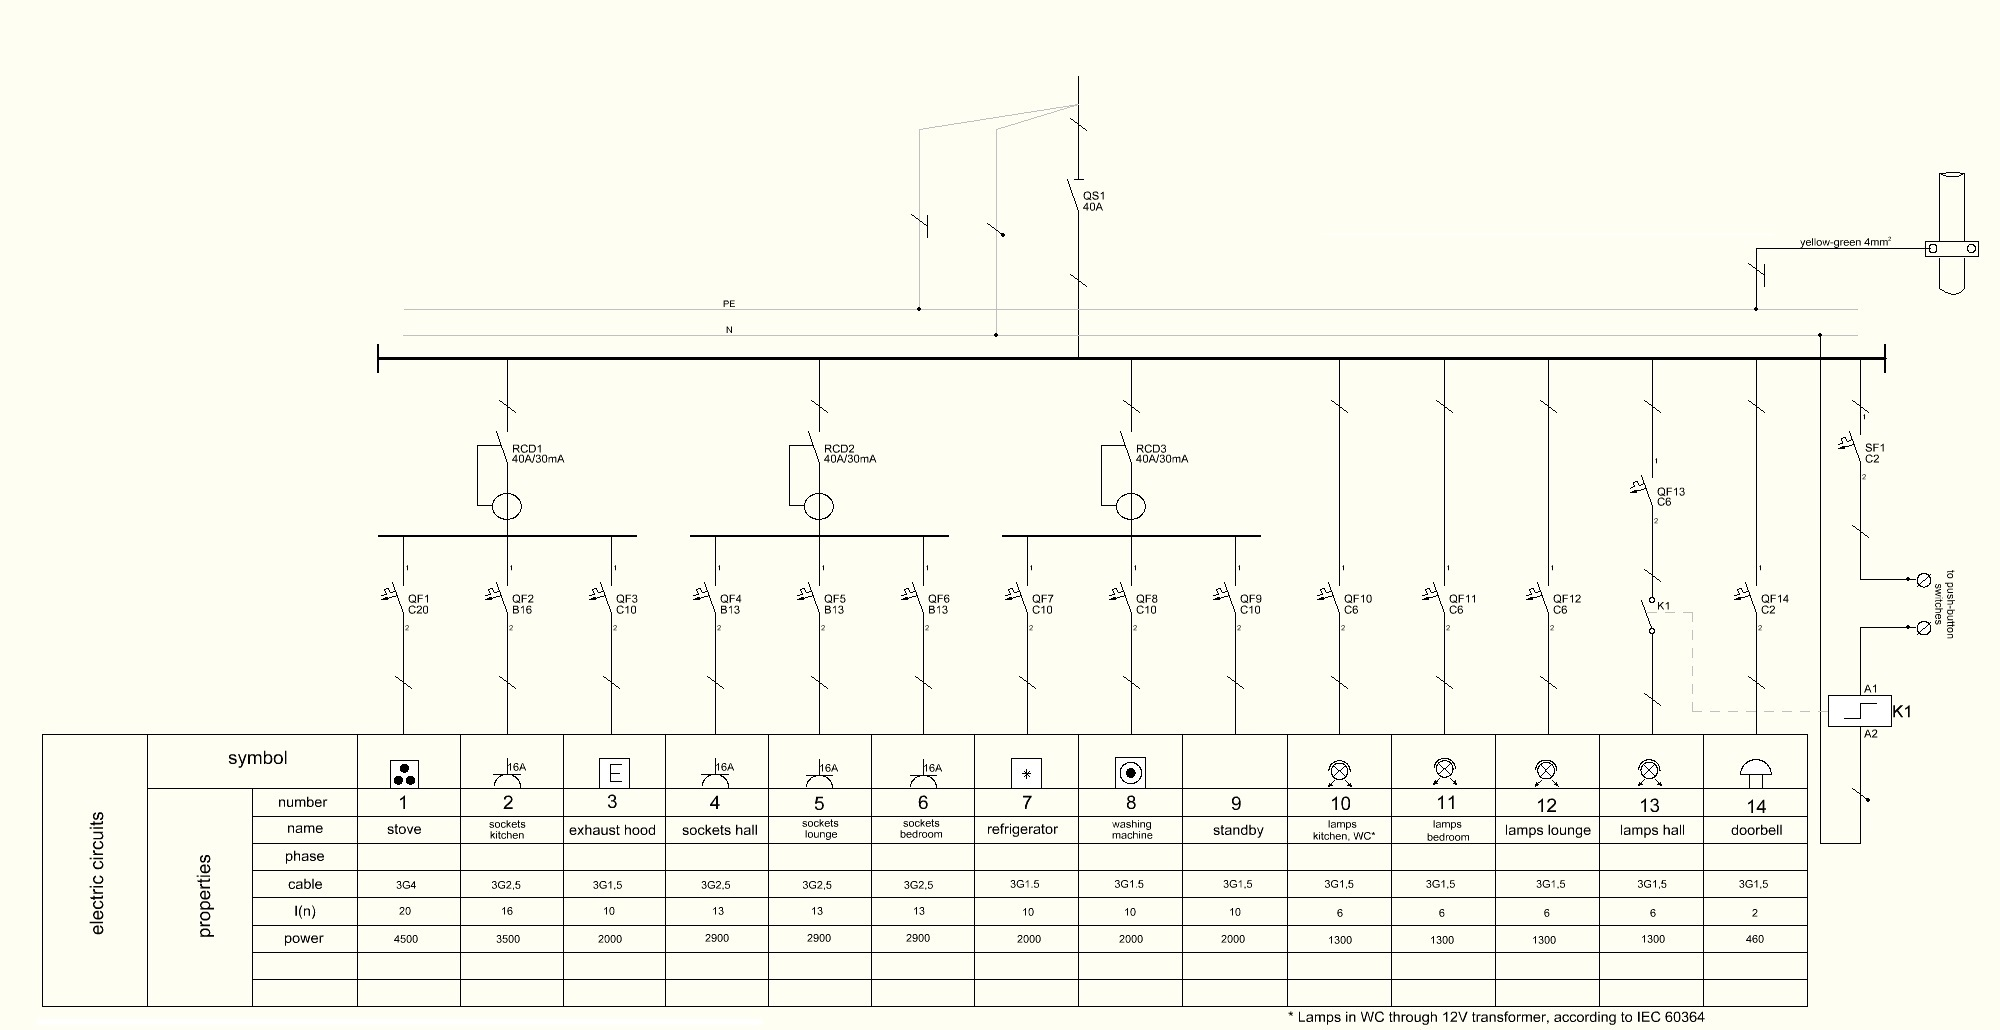 single line wiring diagram single line diagram symbols wiring Line Wiring Diagram single line wiring diagram single line diagram symbols wiring diagrams \u2022 techwomen co line reactor wiring diagram